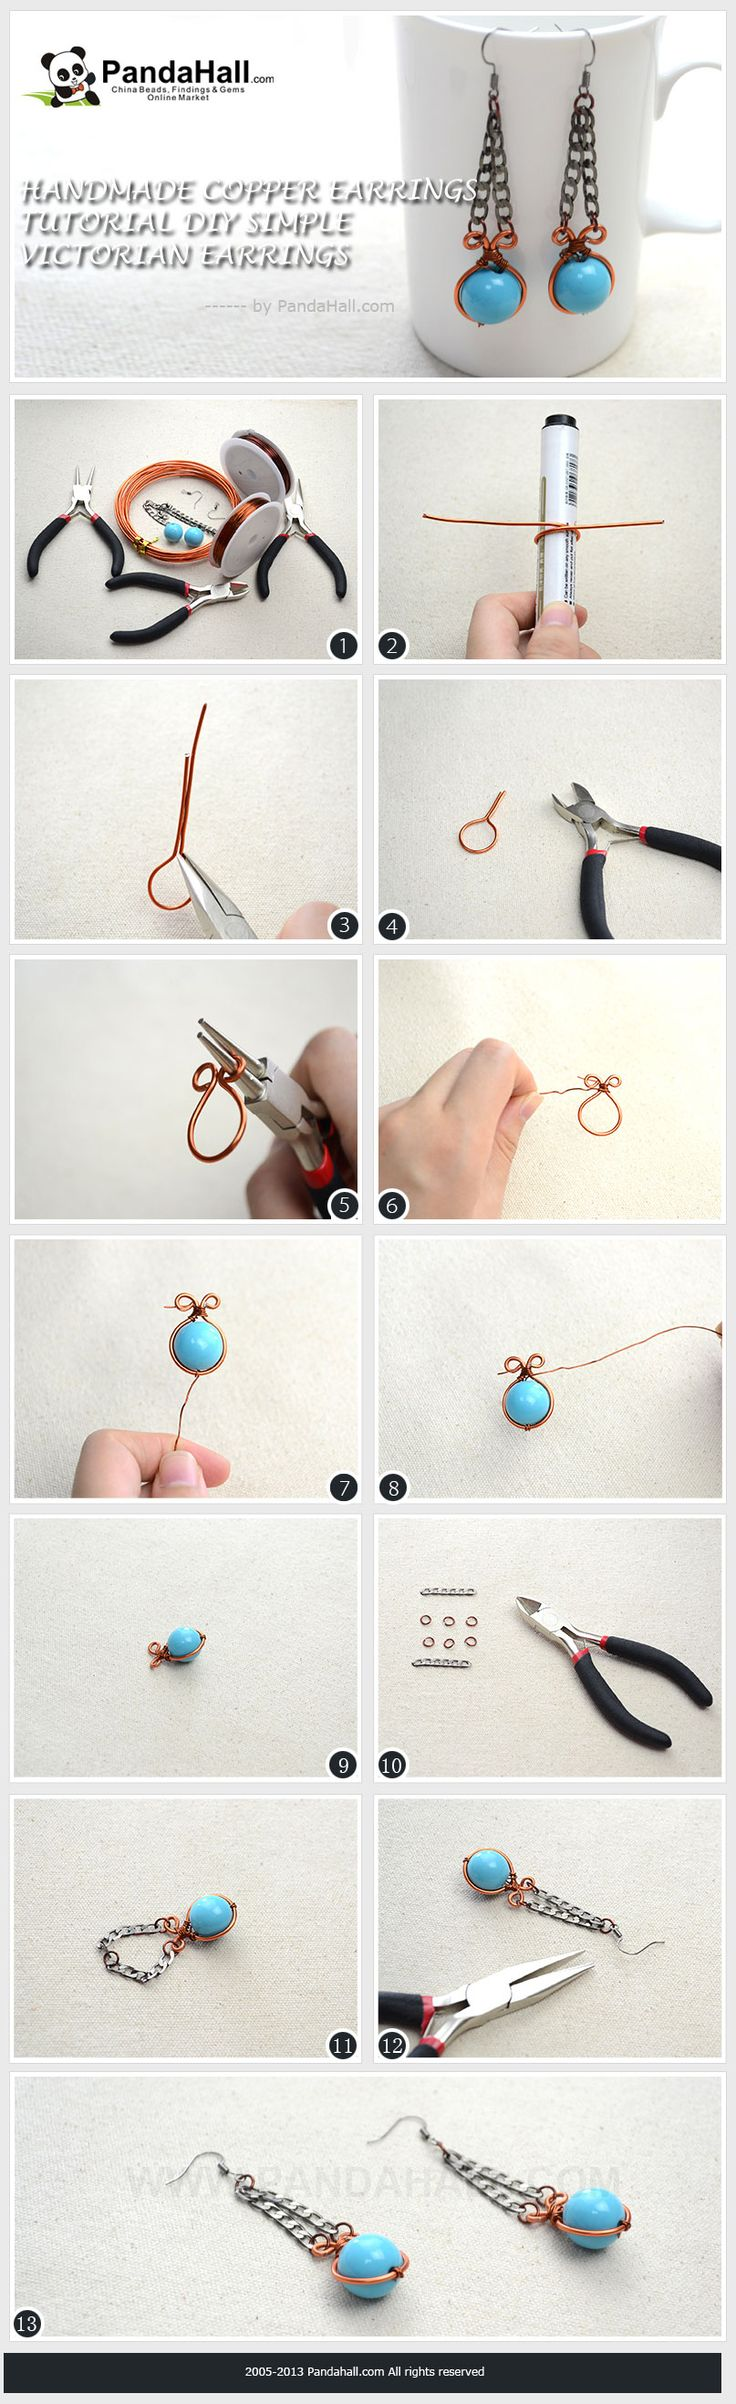 Handmade Copper Earrings tutorial - DIY Simple Victorian Earrings ...